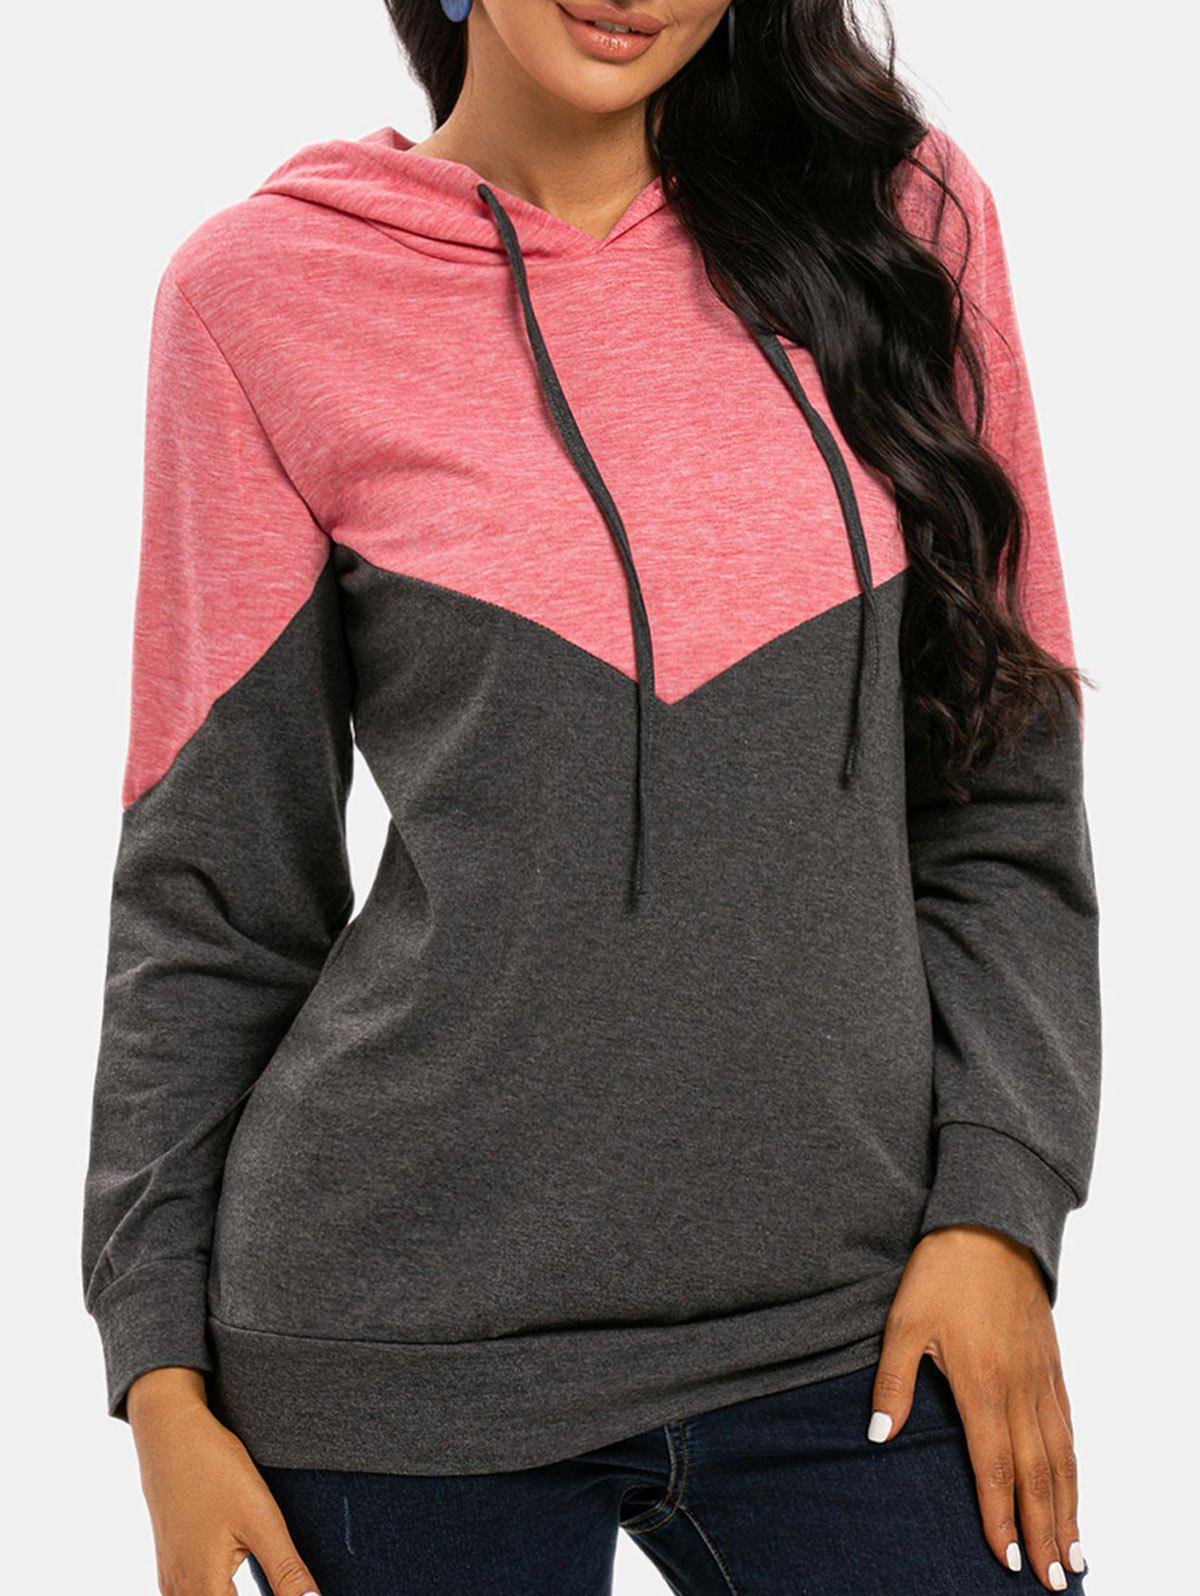 Two Tone Drawstring Pullover Hoodie - LIGHT PINK L